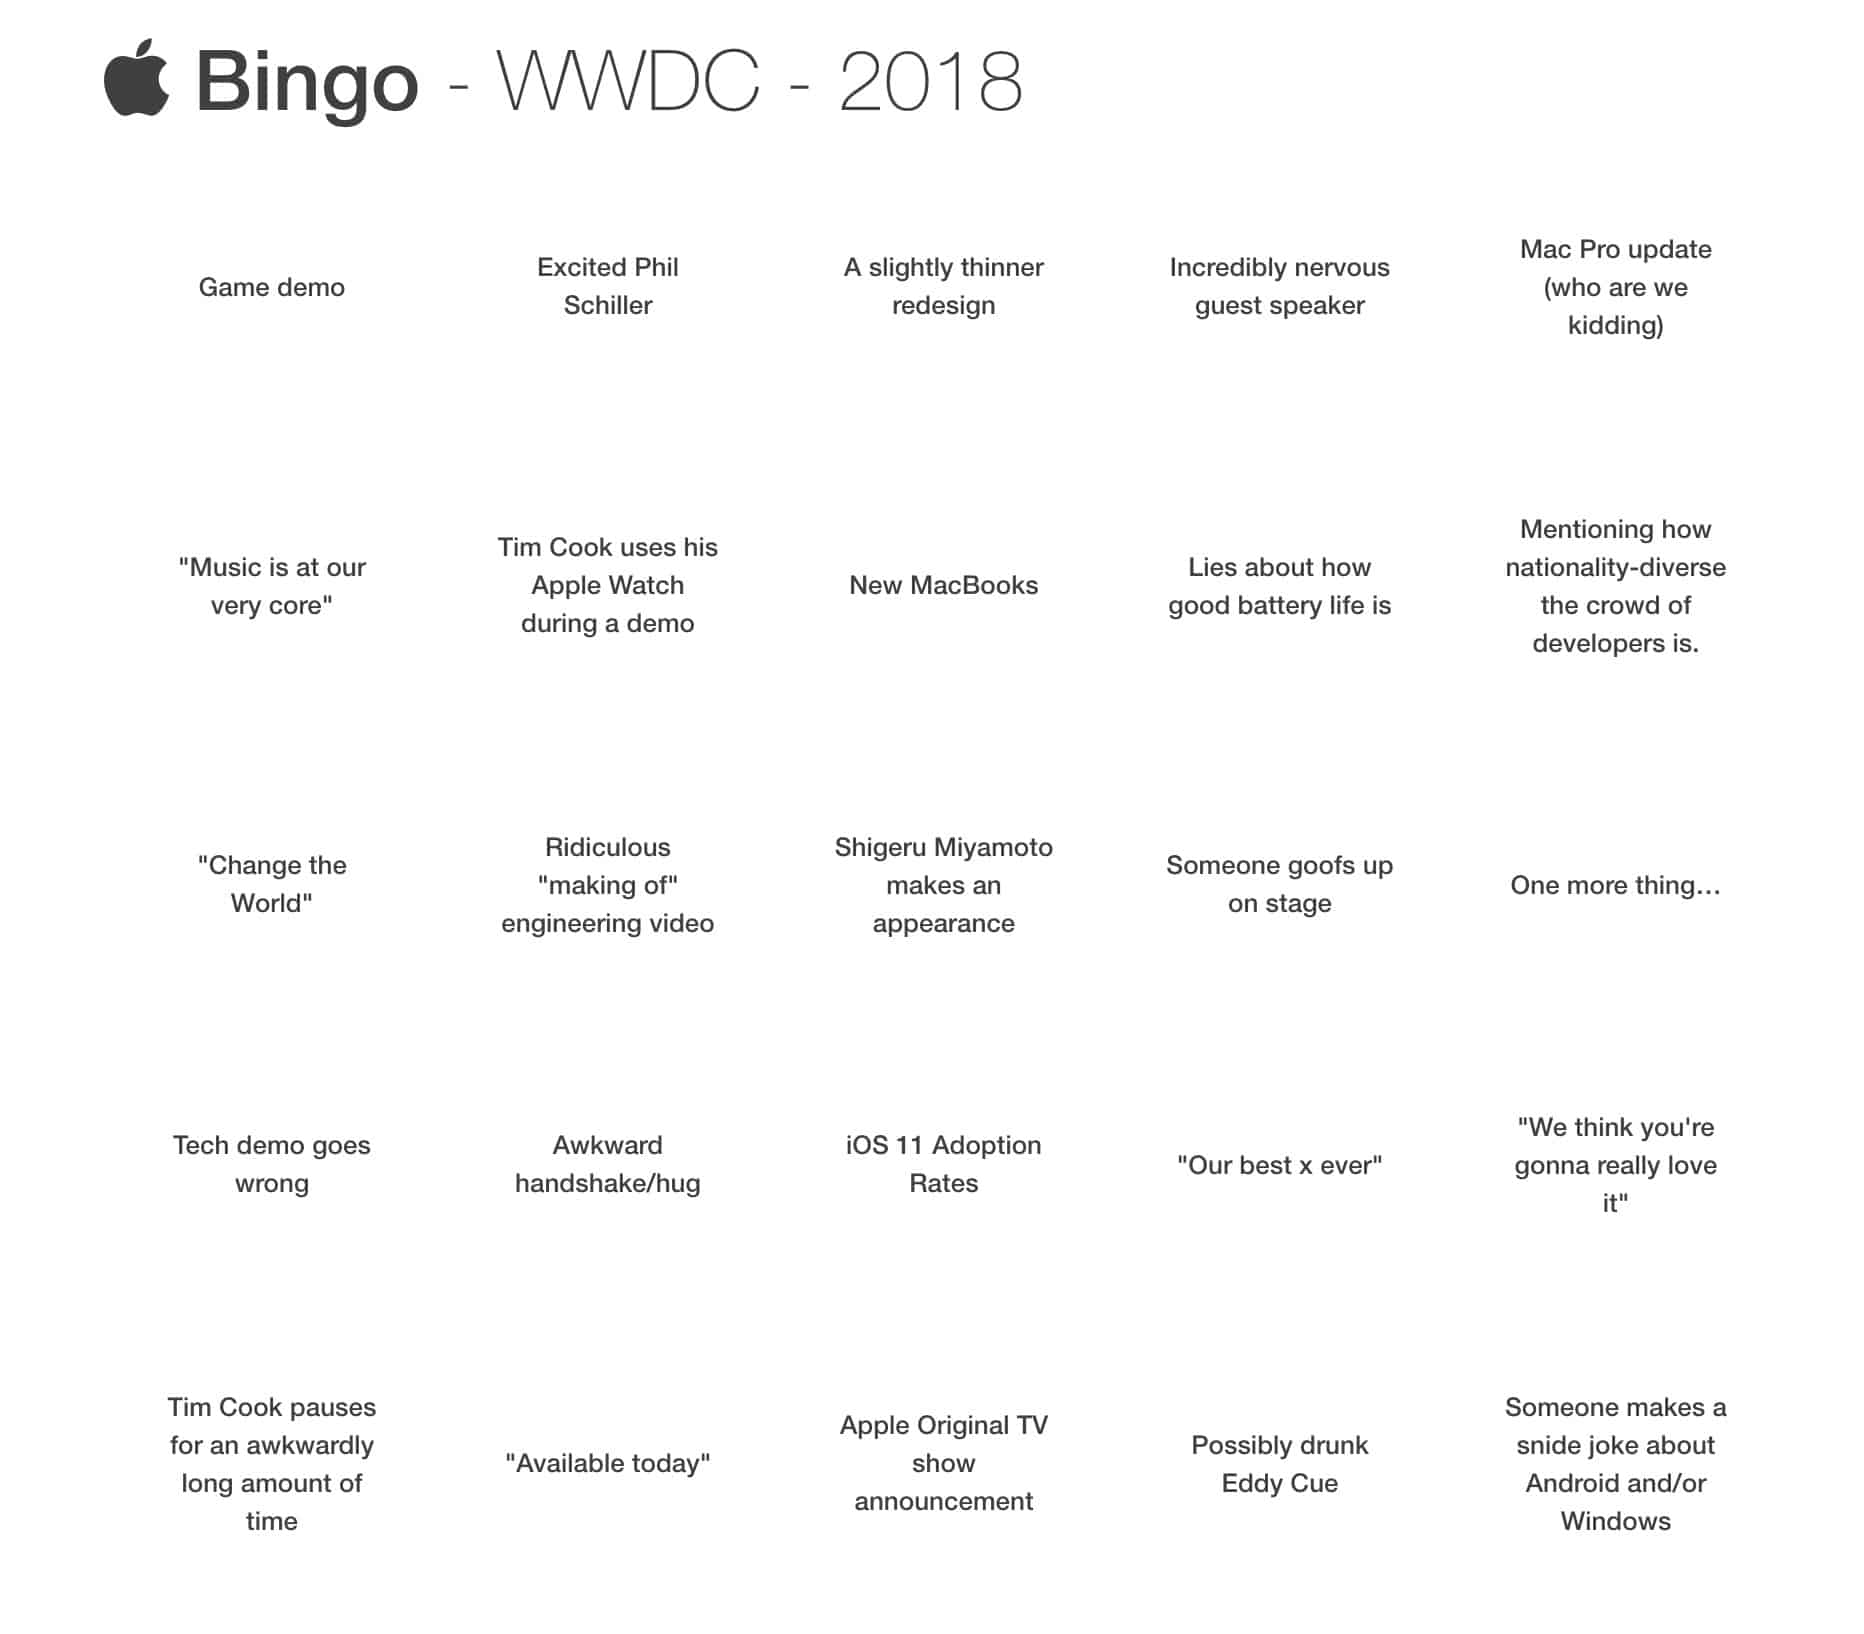 Liveblog: Apple's WWDC 2018 keynote is on June 4